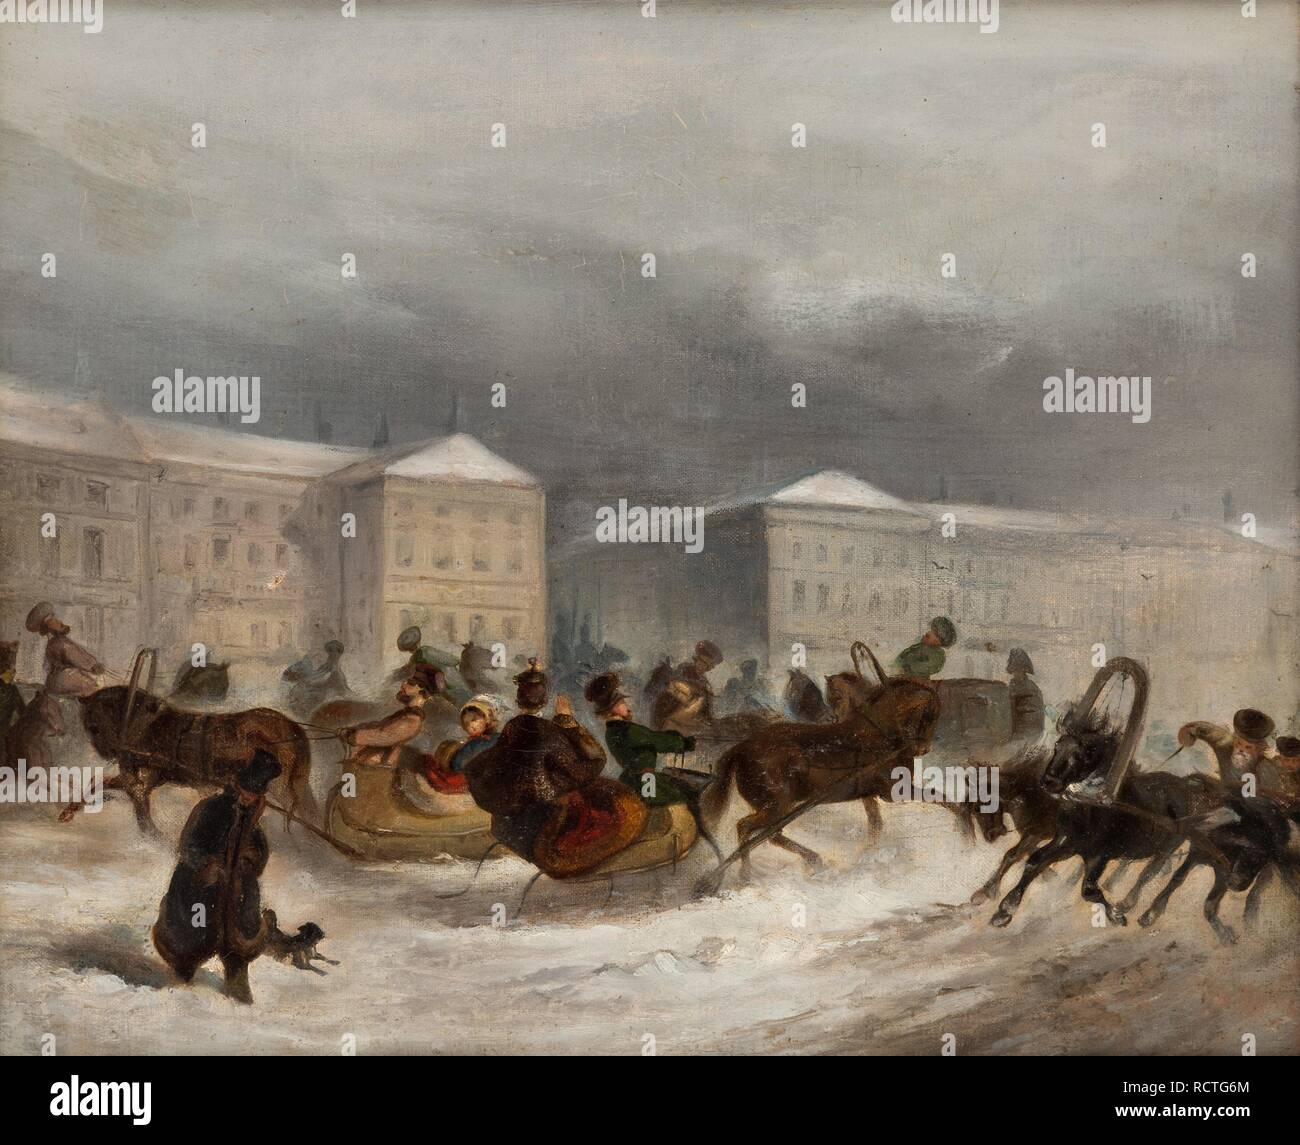 Winter Sleigh Rides. Museum: PRIVATE COLLECTION. Author: ANONYMOUS. Stock Photo